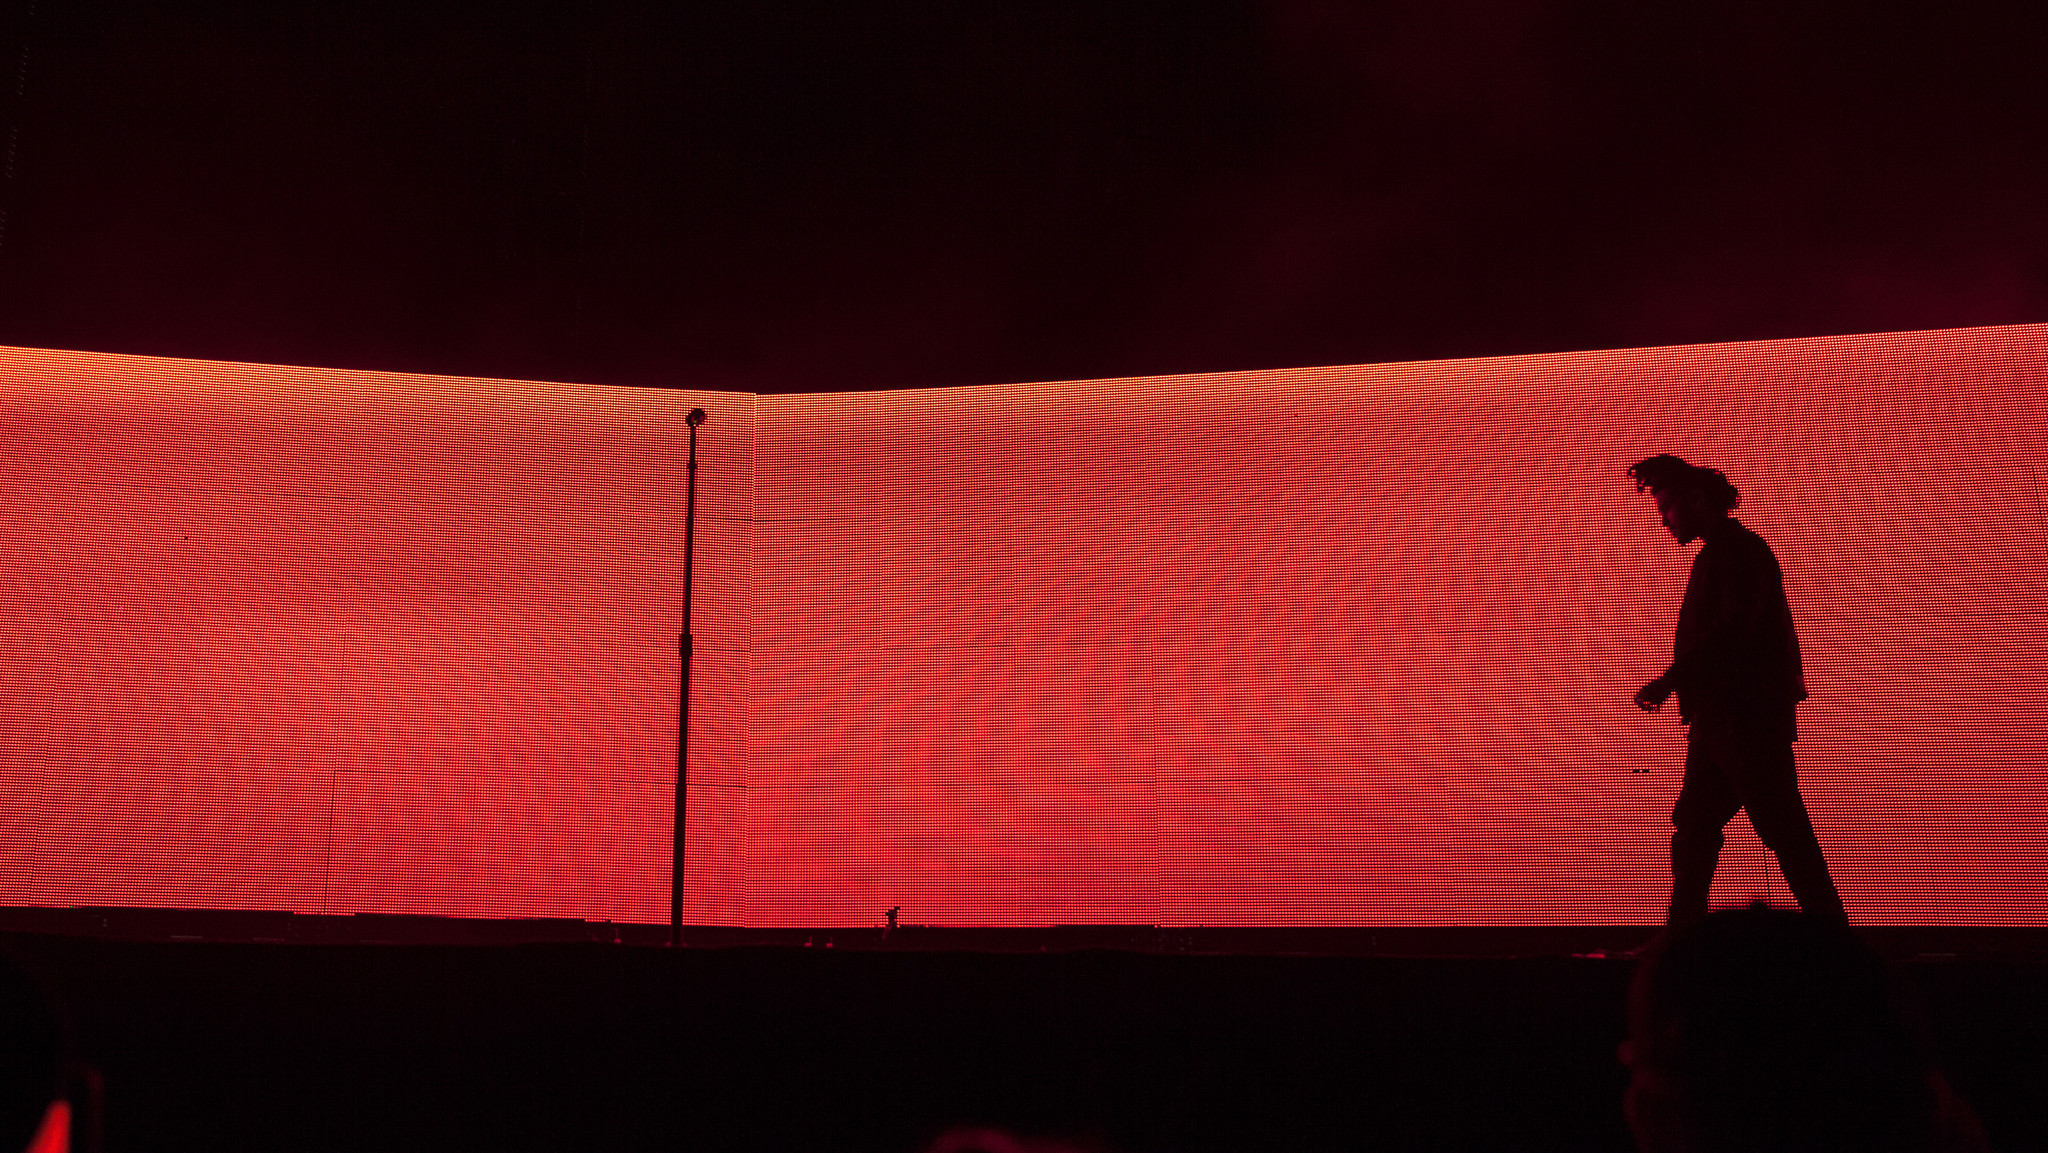 A wall of red light